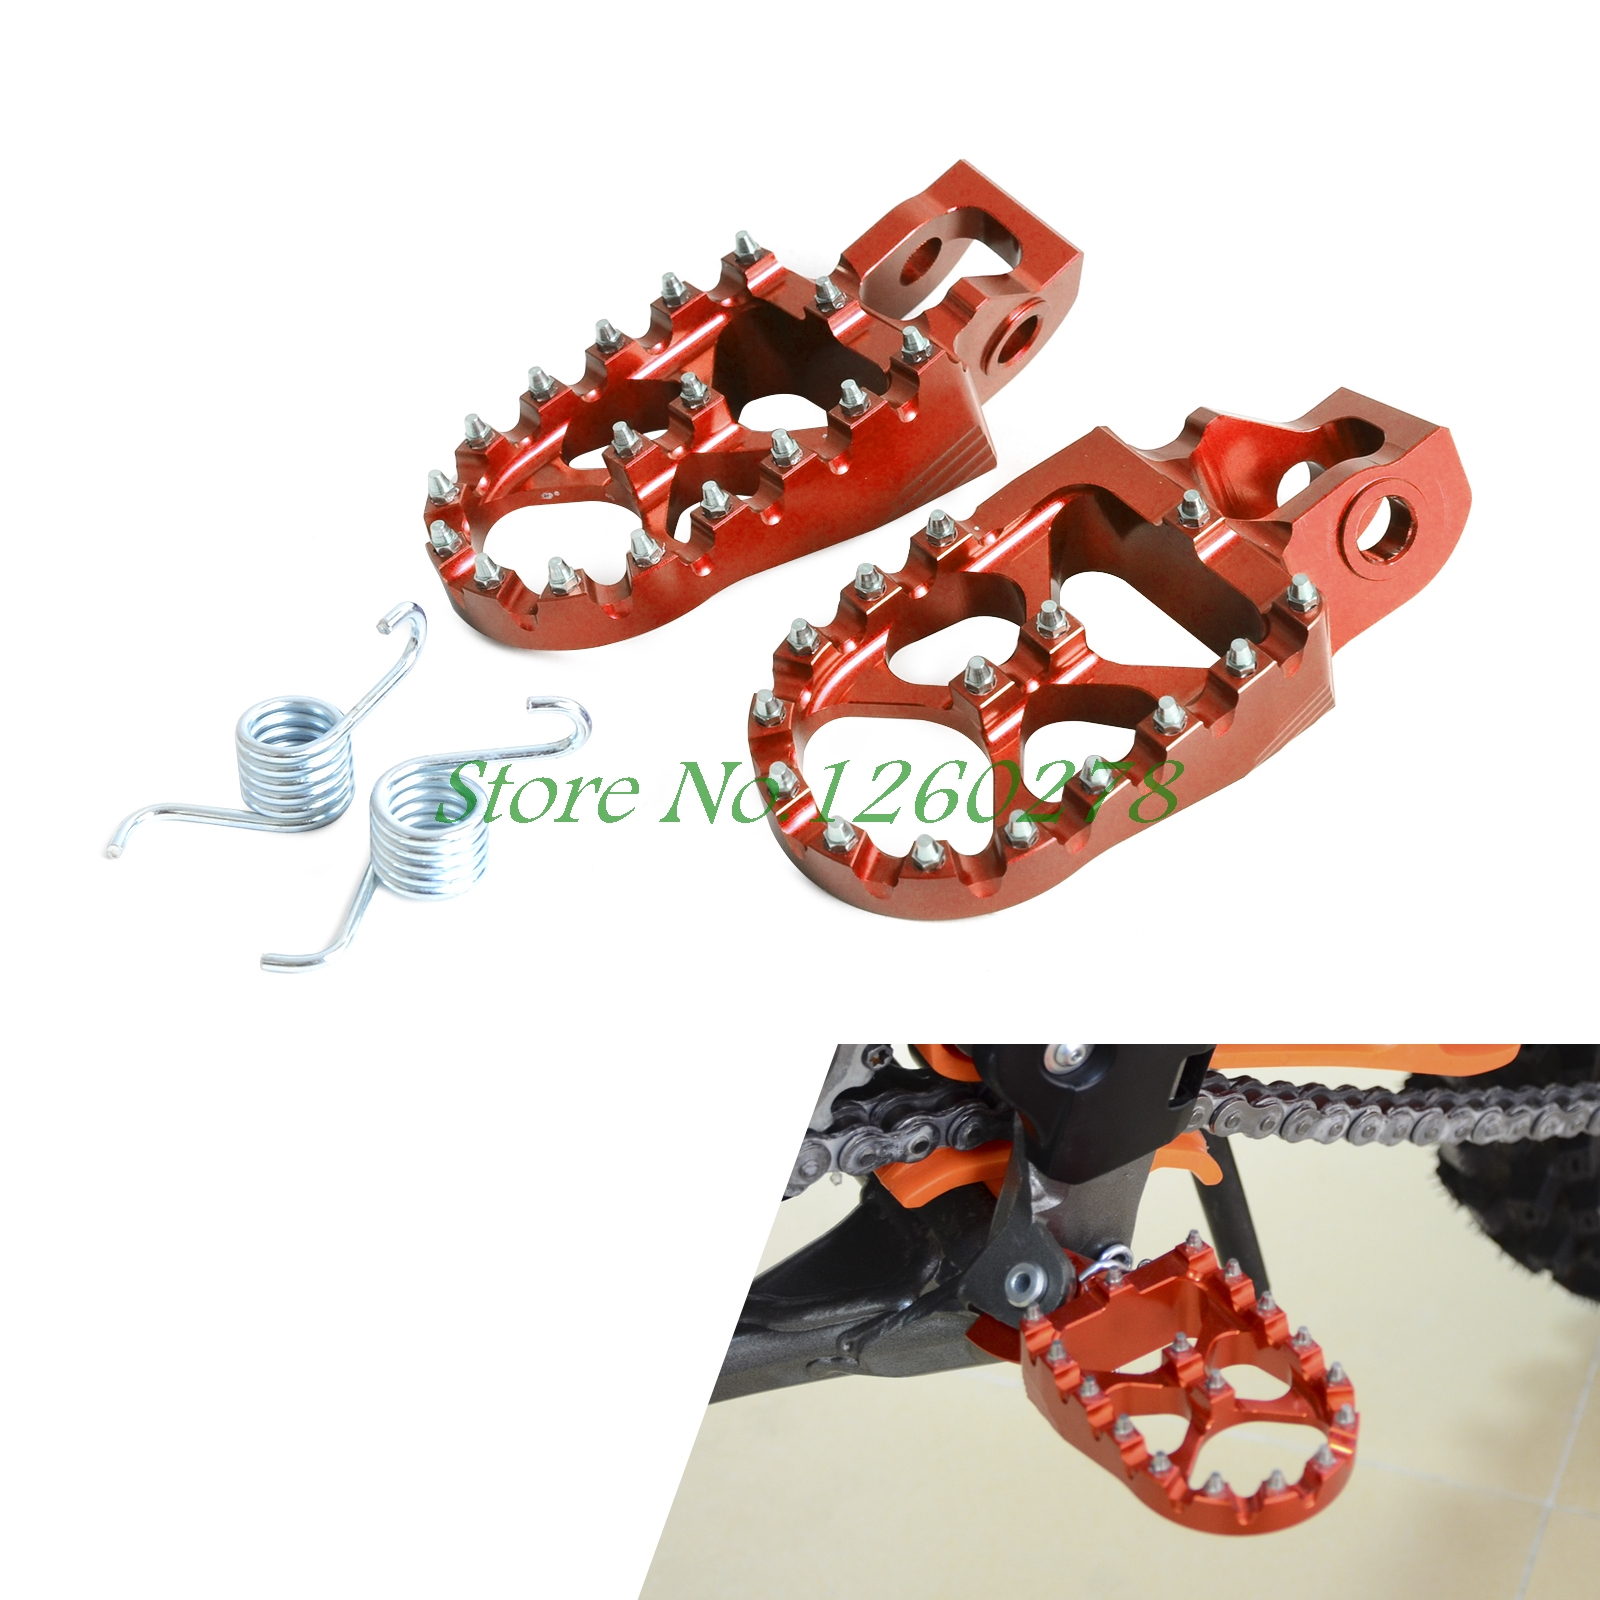 NICECNC 57mm Billet Wide CNC Foot Pegs Footrests For KTM 85 125 200 250 300 350 400 450 530 SX SXF EXC/EXCF XC/XCF XCW 2017 2018 wp front fork compression valve removal tool for ktm 125 200 250 300 350 400 450 sx sxf xc xcf 2017 2018 shock absorber parts